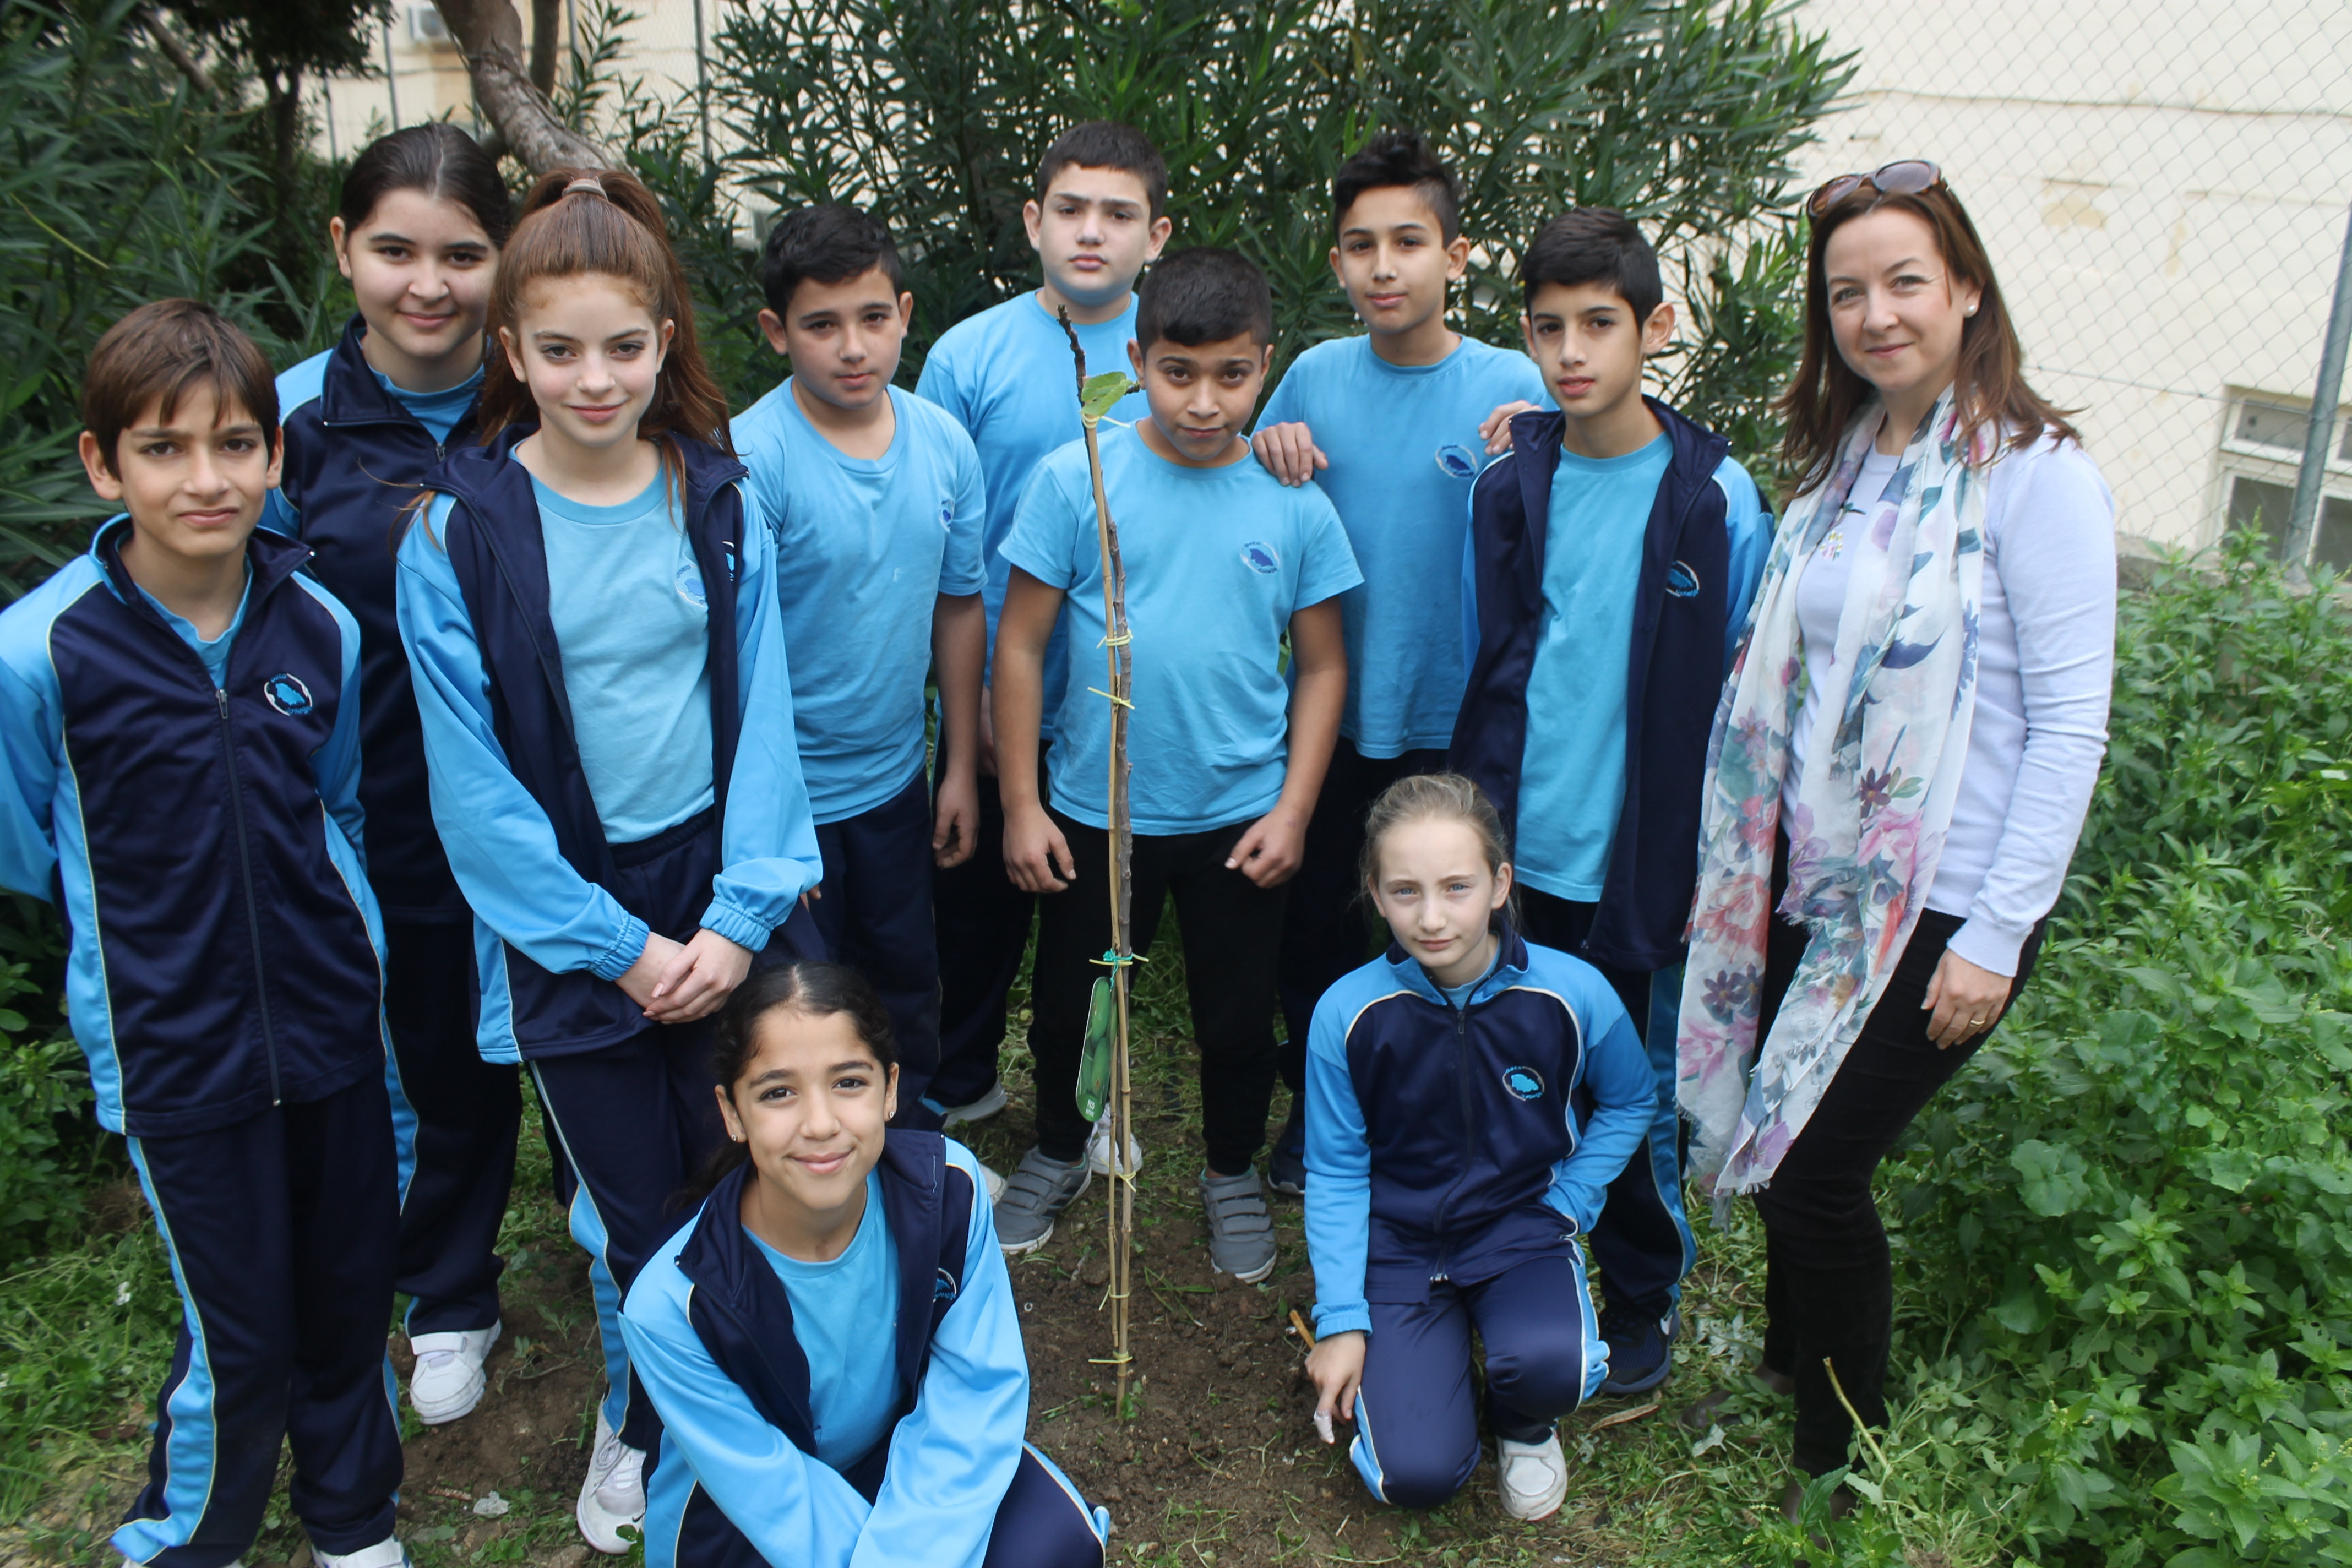 Students from Gozo College Middle School (Victoria, Gozo, Malta), together with their teacher, Ms. Ramona Mercieca, with the newly planted Fig Tree in the school garden.